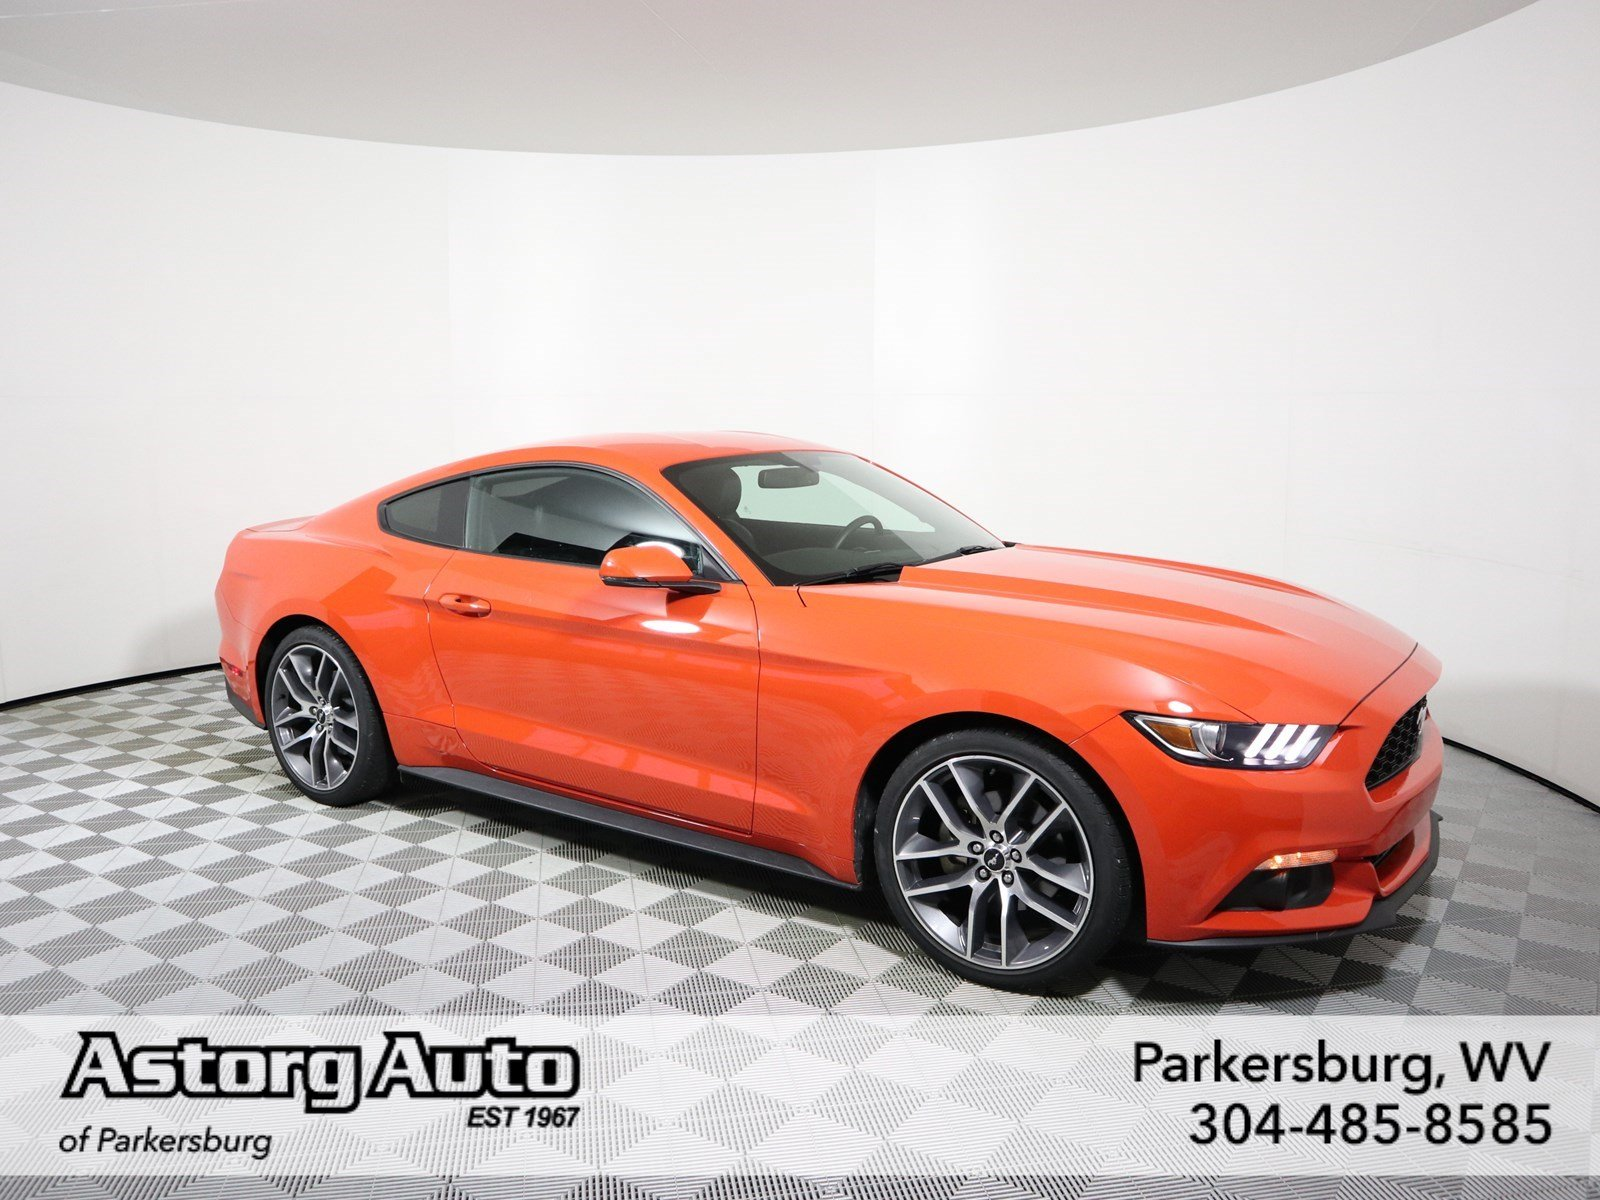 Certified Pre Owned 2015 Ford Mustang 2dr Car in Parkersburg